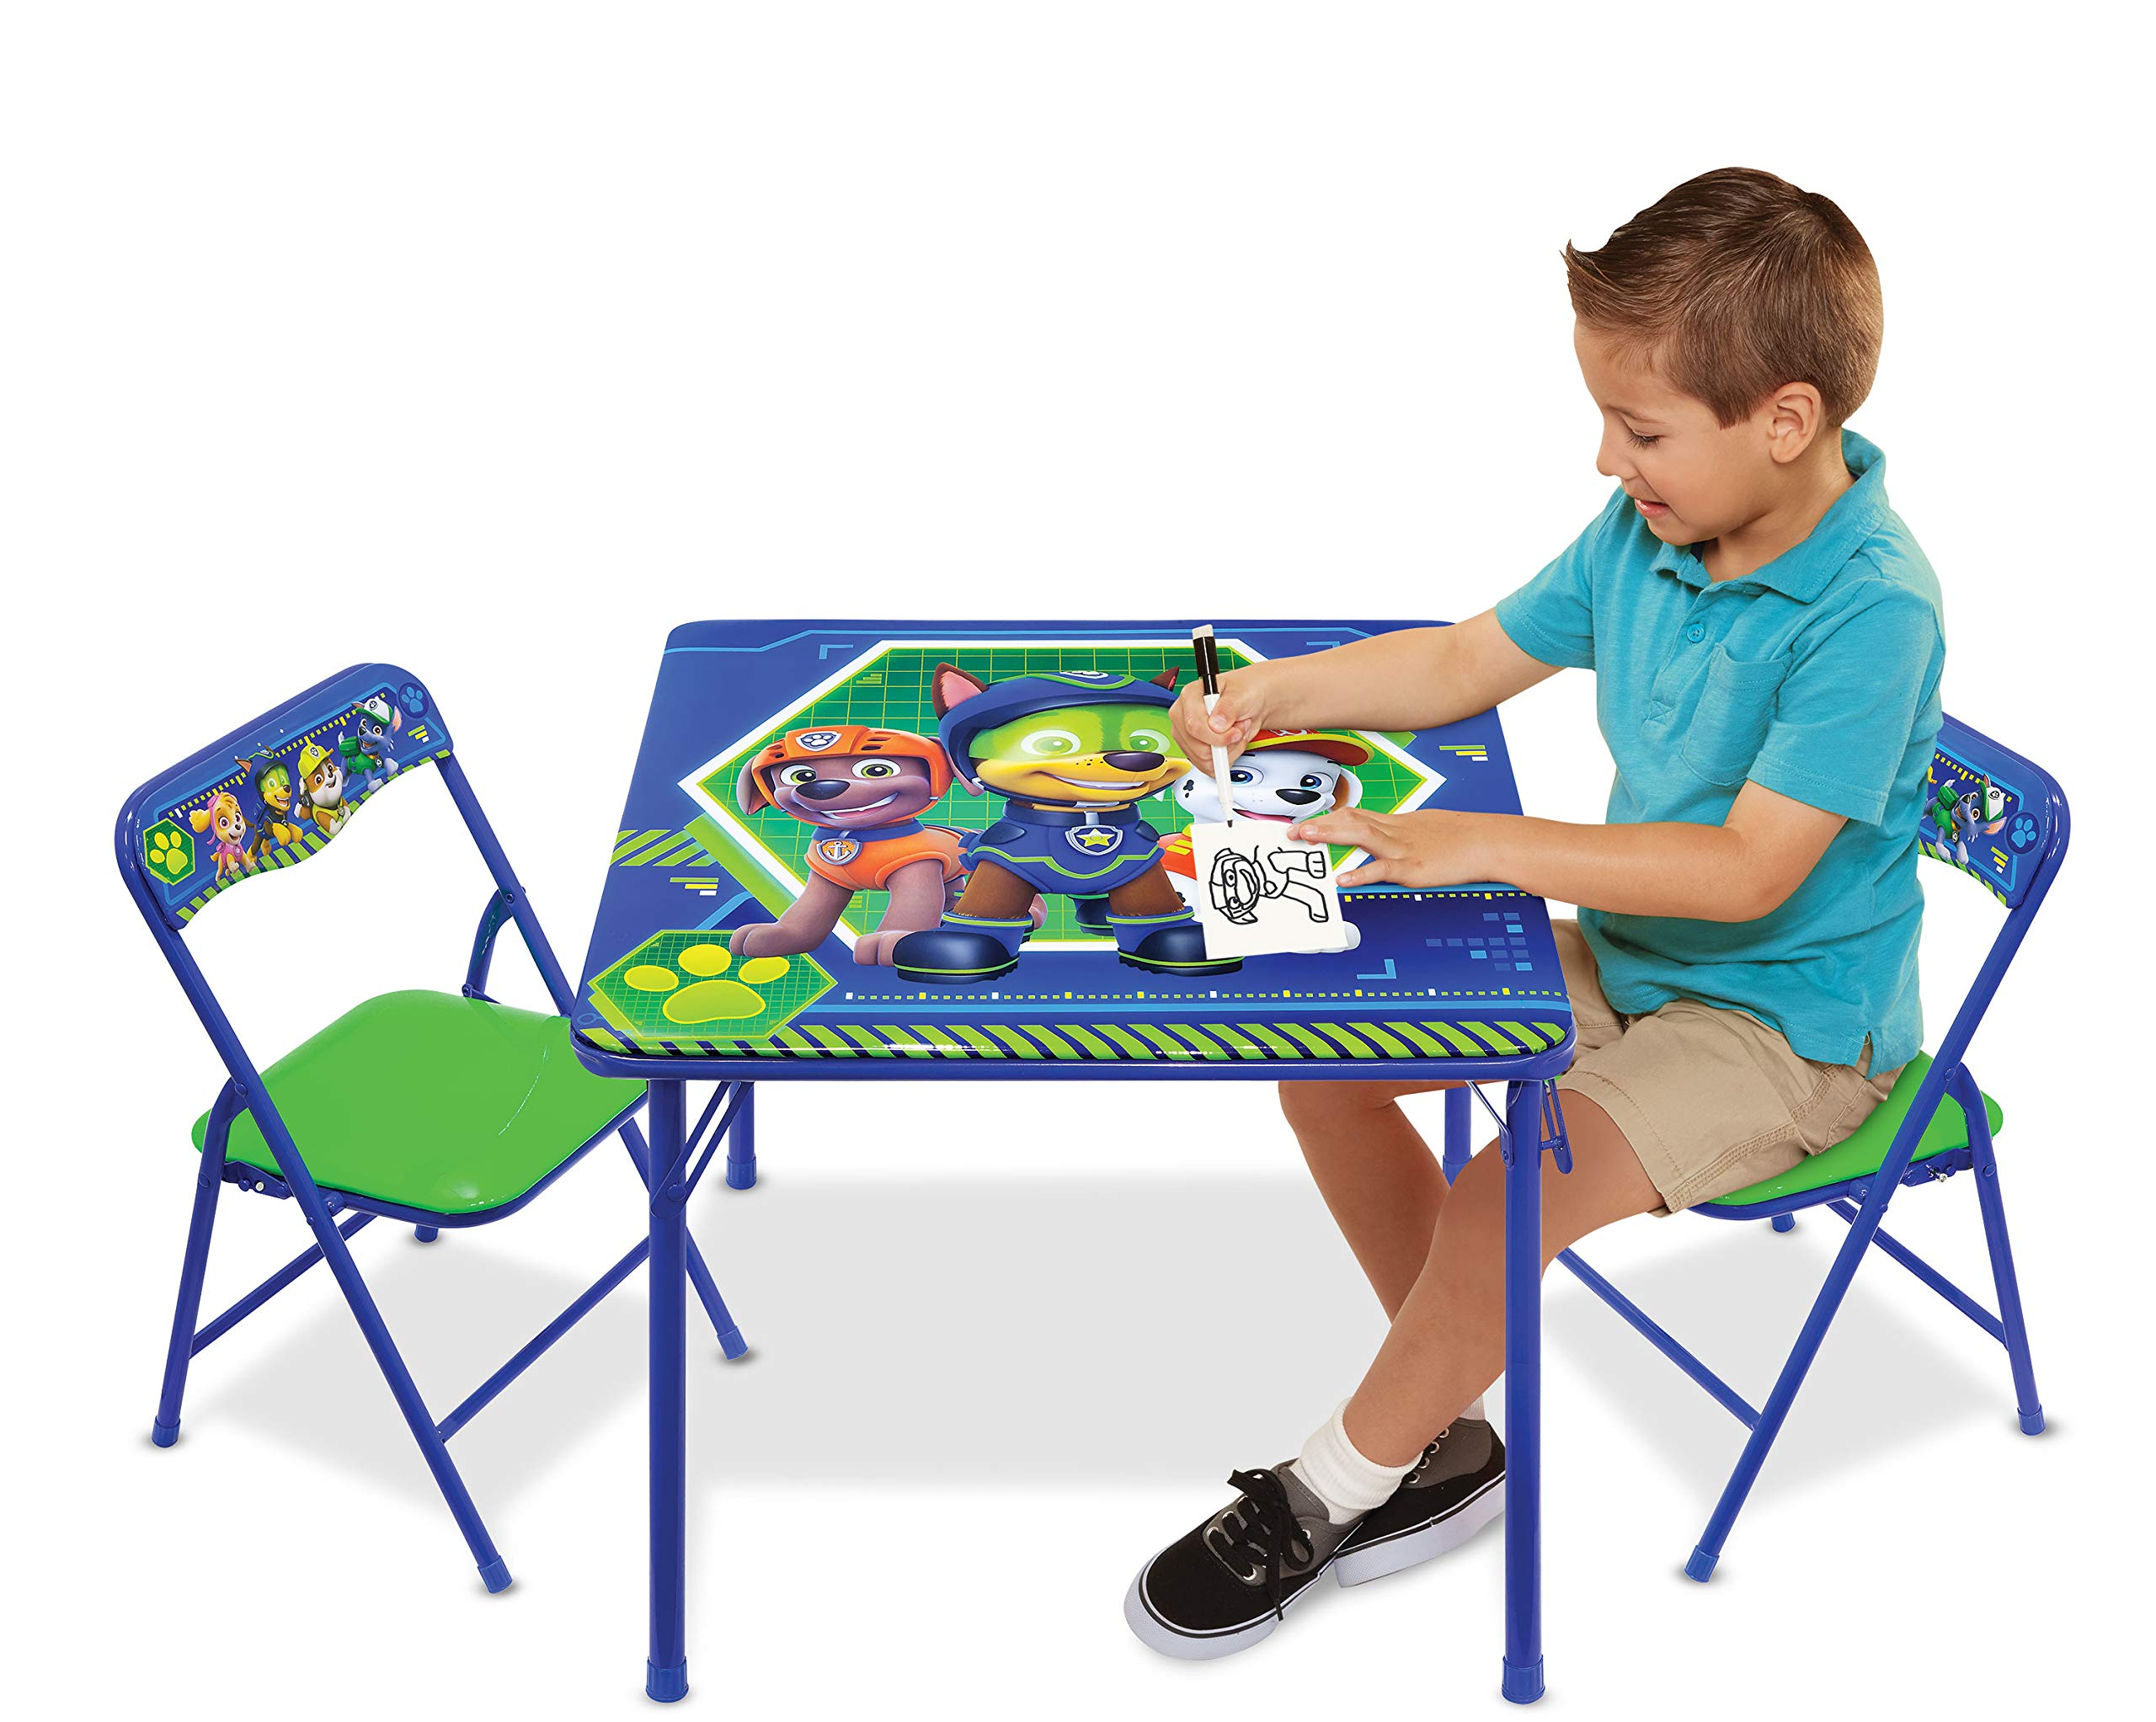 Nickelodeon Patrol Code Paw Activity Table Play Set with Two Chairs, Blue-Green by Jakks Pacific